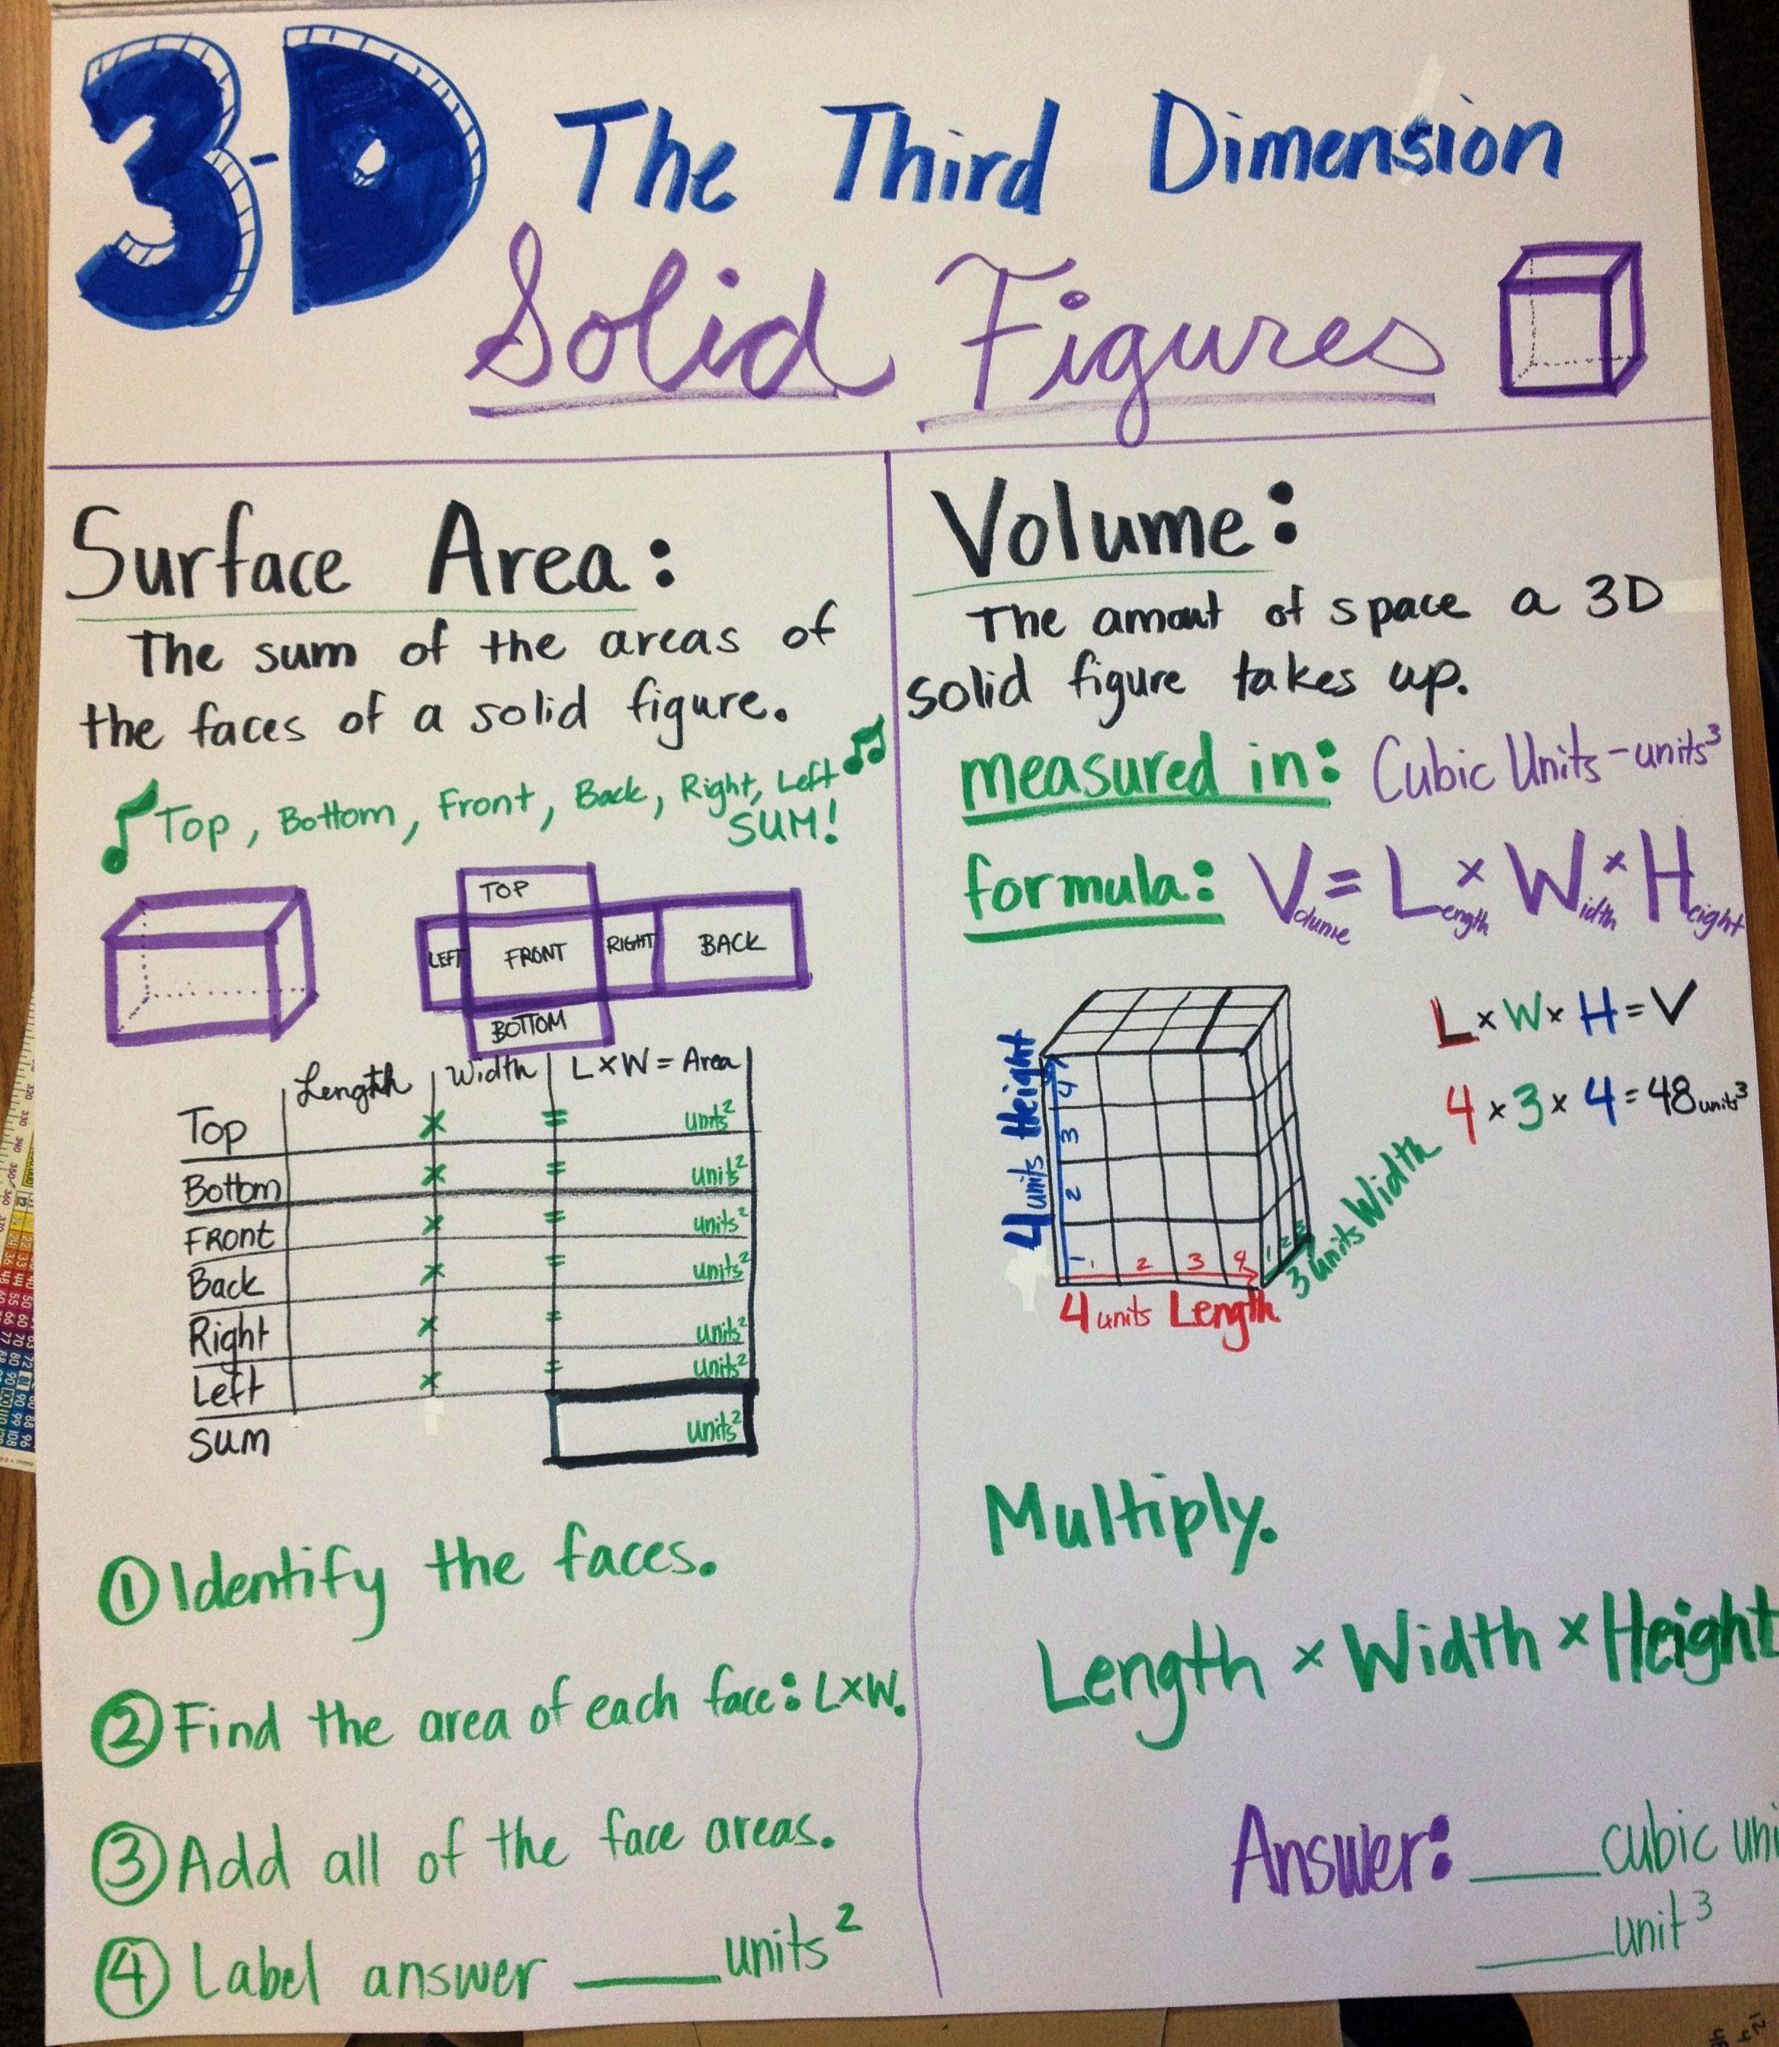 Surface Area And Volume 3d Solid Figures